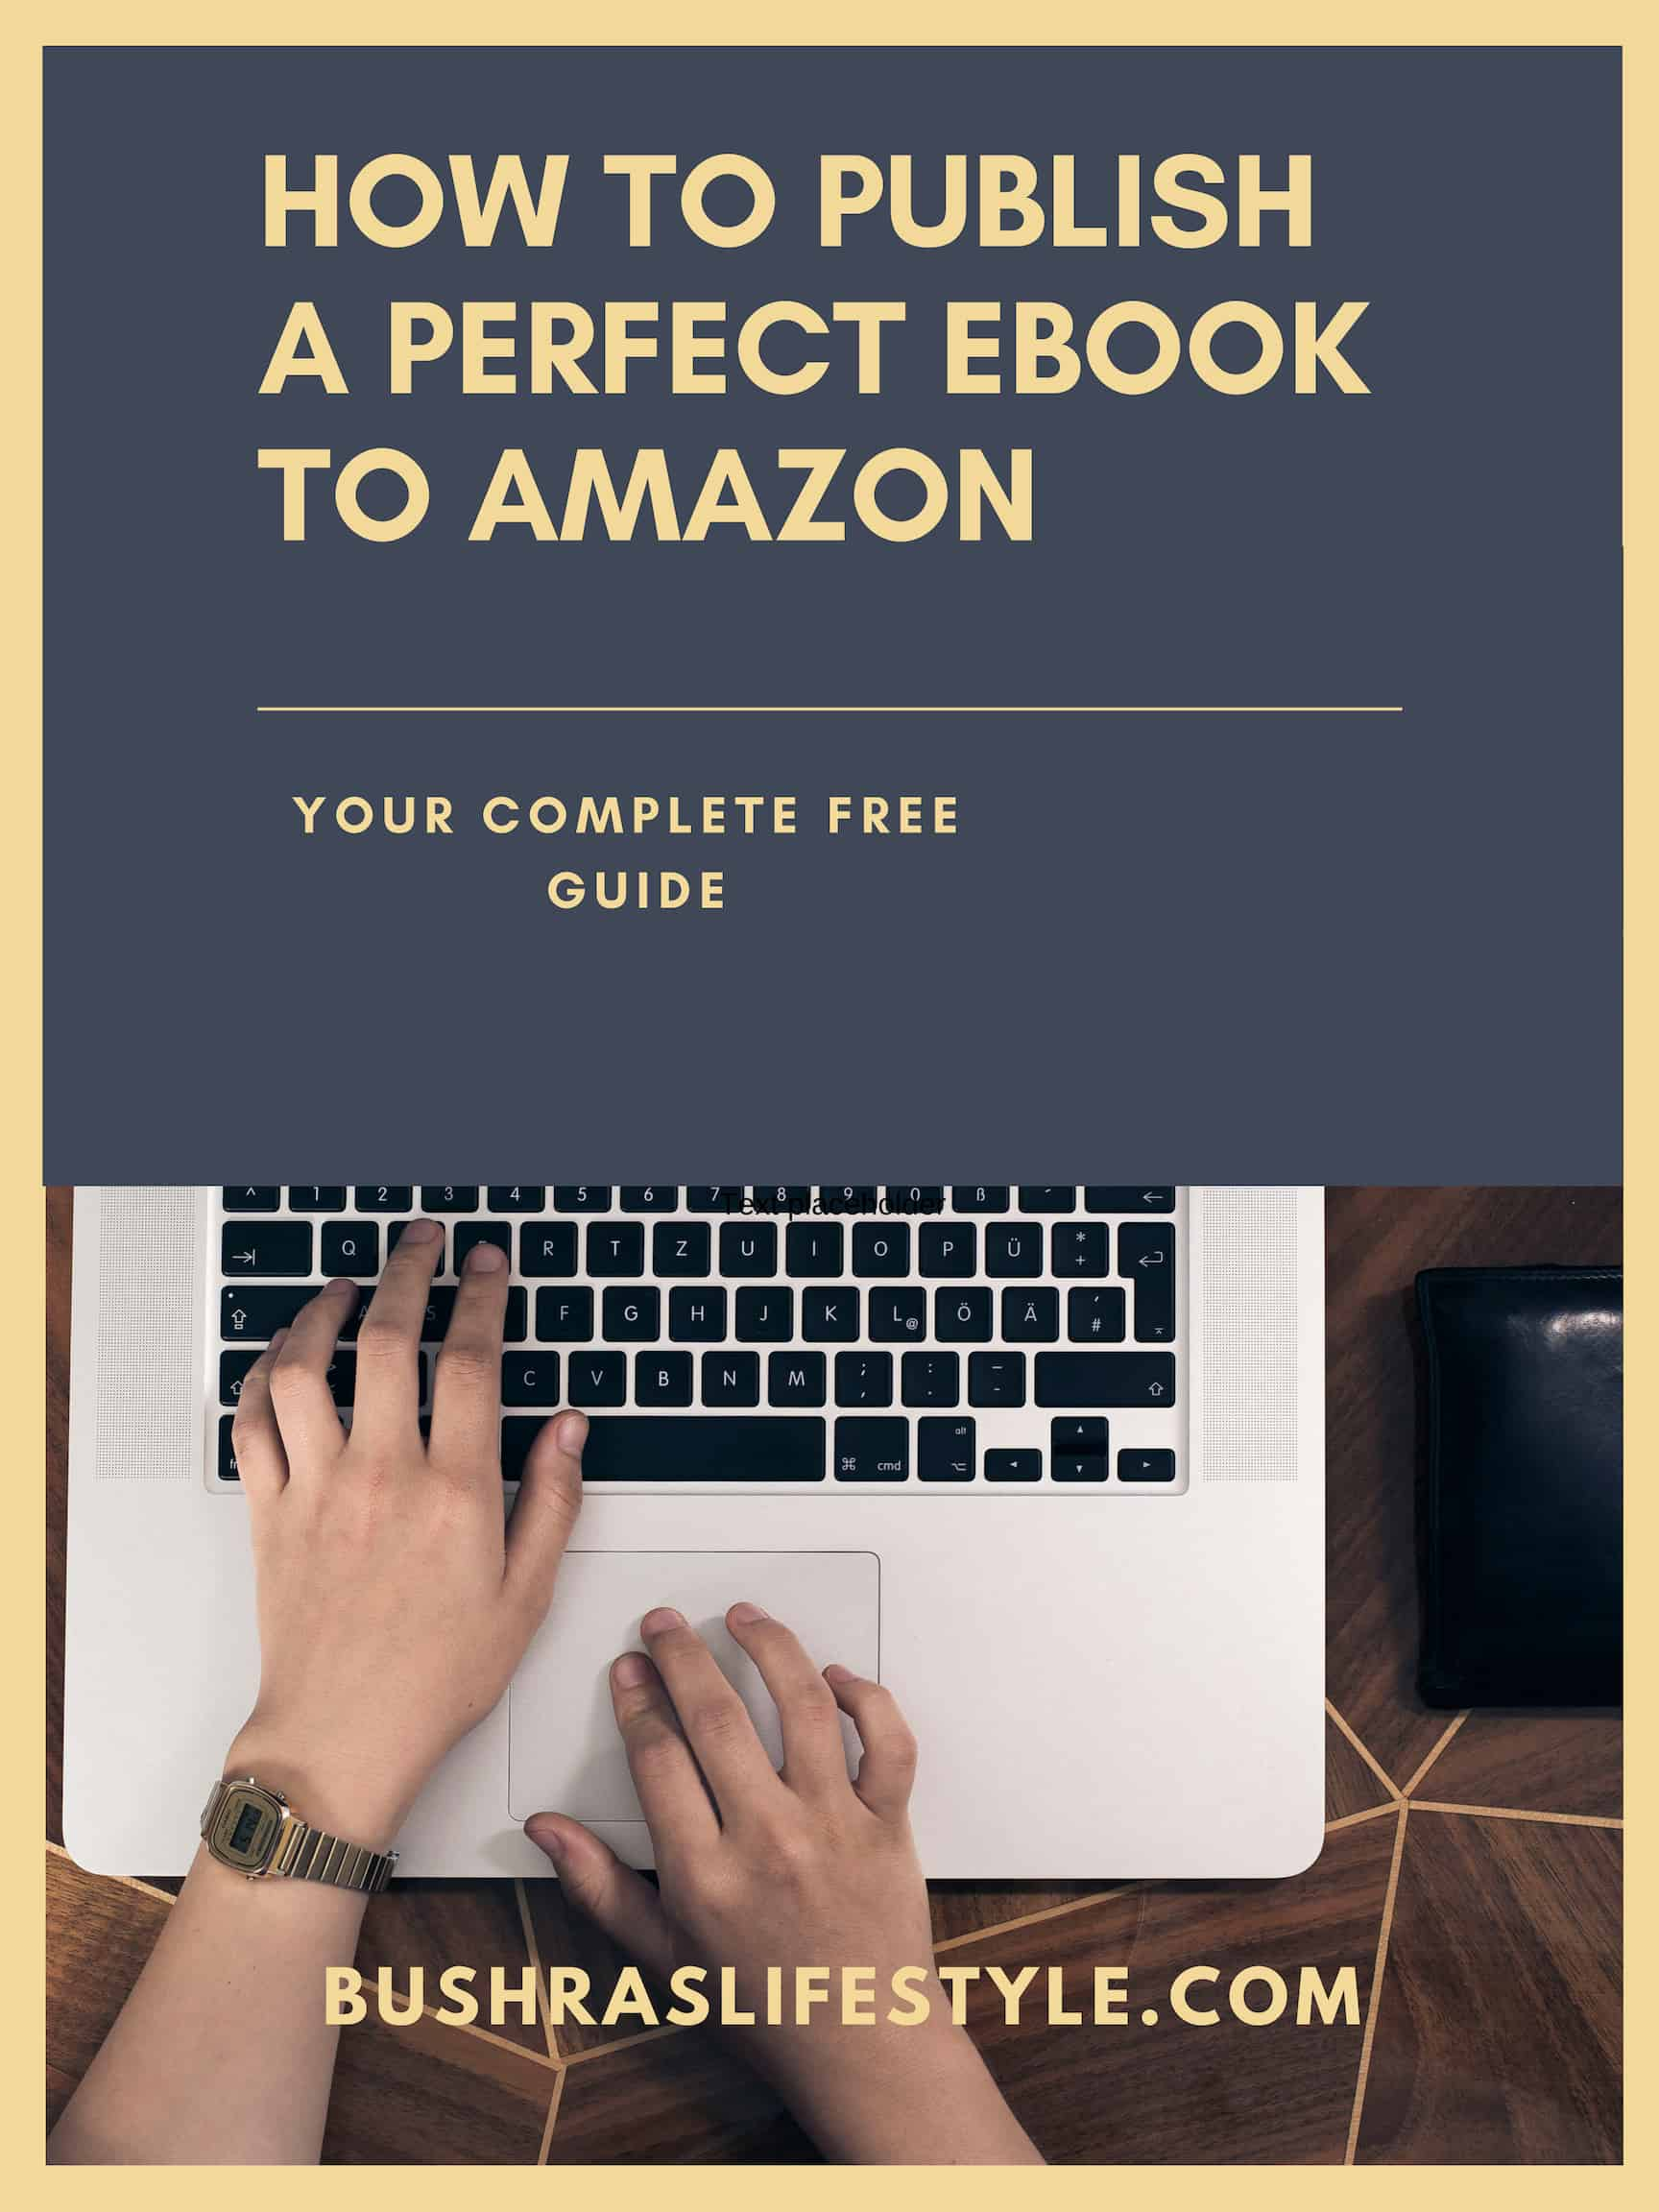 hOW TO PUBLISH A PERFECT EBOOK TO aMAZON (6).jpg